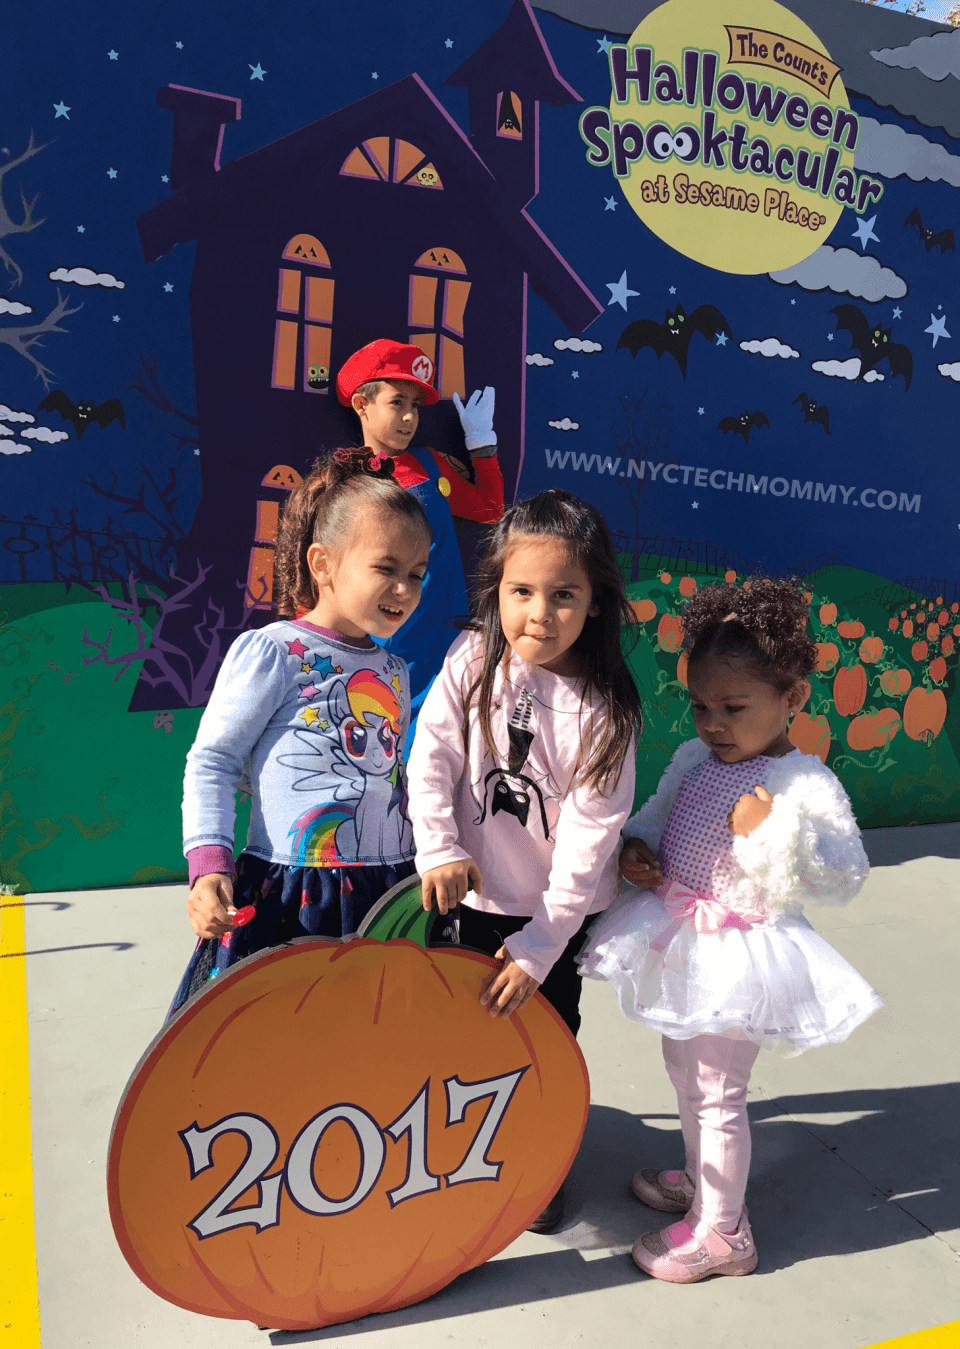 We had Spooktacular Time at Sesame Place! Here are my tips for a great visit to Sesame Place